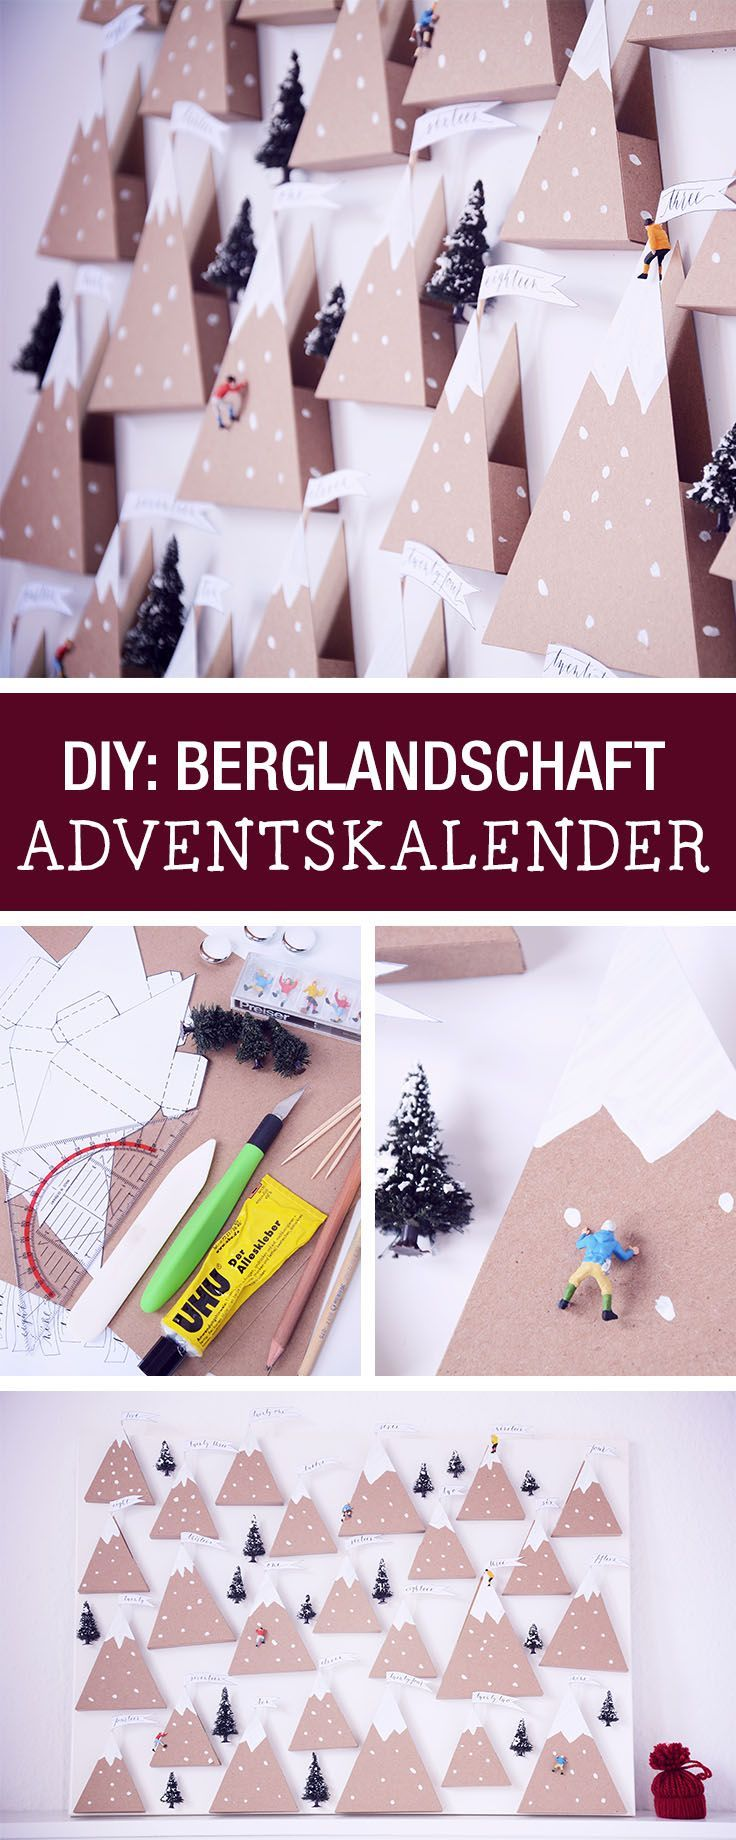 DIY-Anleitung für einen Adventskalender in Form einer Berglandschat / advents calendar for mountain lovers, get the tutorial via DaWanda.com #calendrierdel#39;aventdiy